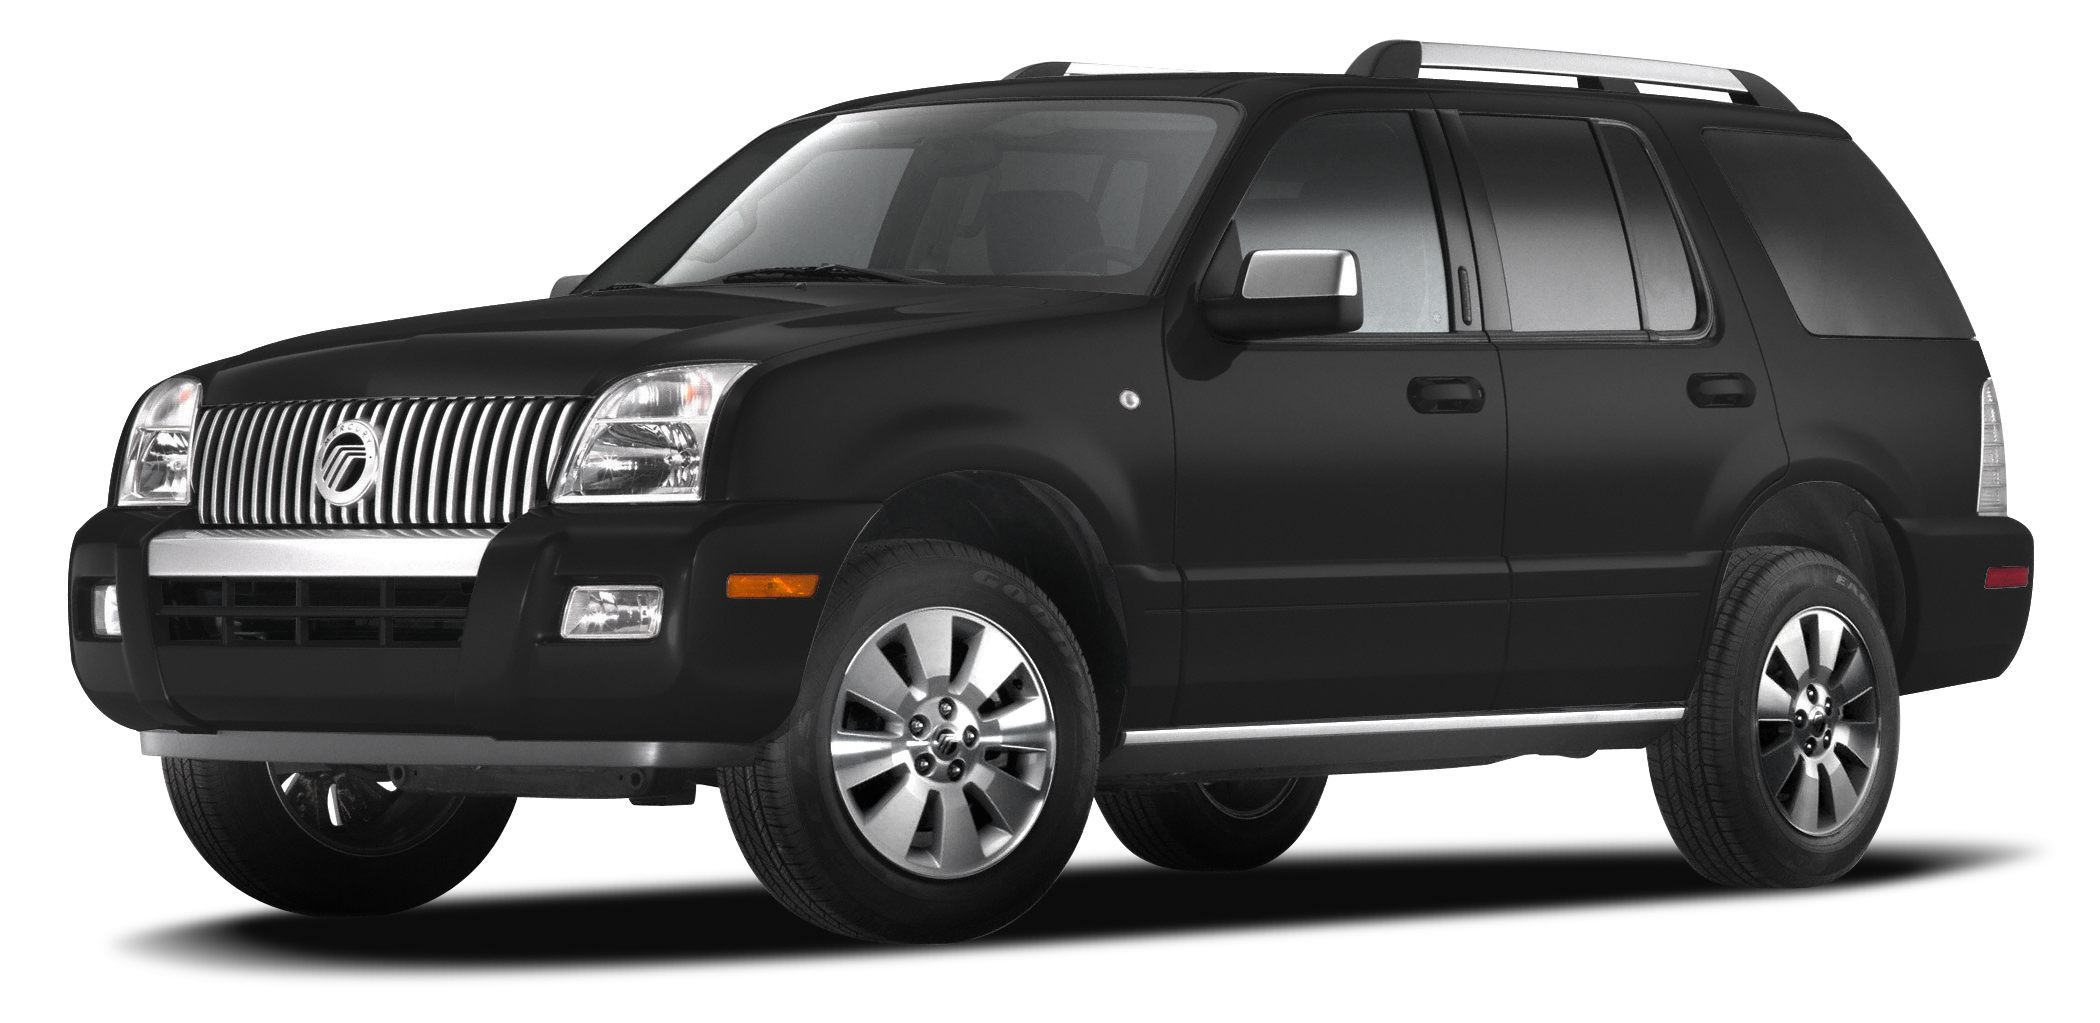 2010 Mercury Mountaineer Premier WOWThis is one GORGEOUS 1 Owner 2010 Mountaineer Premier 4WD